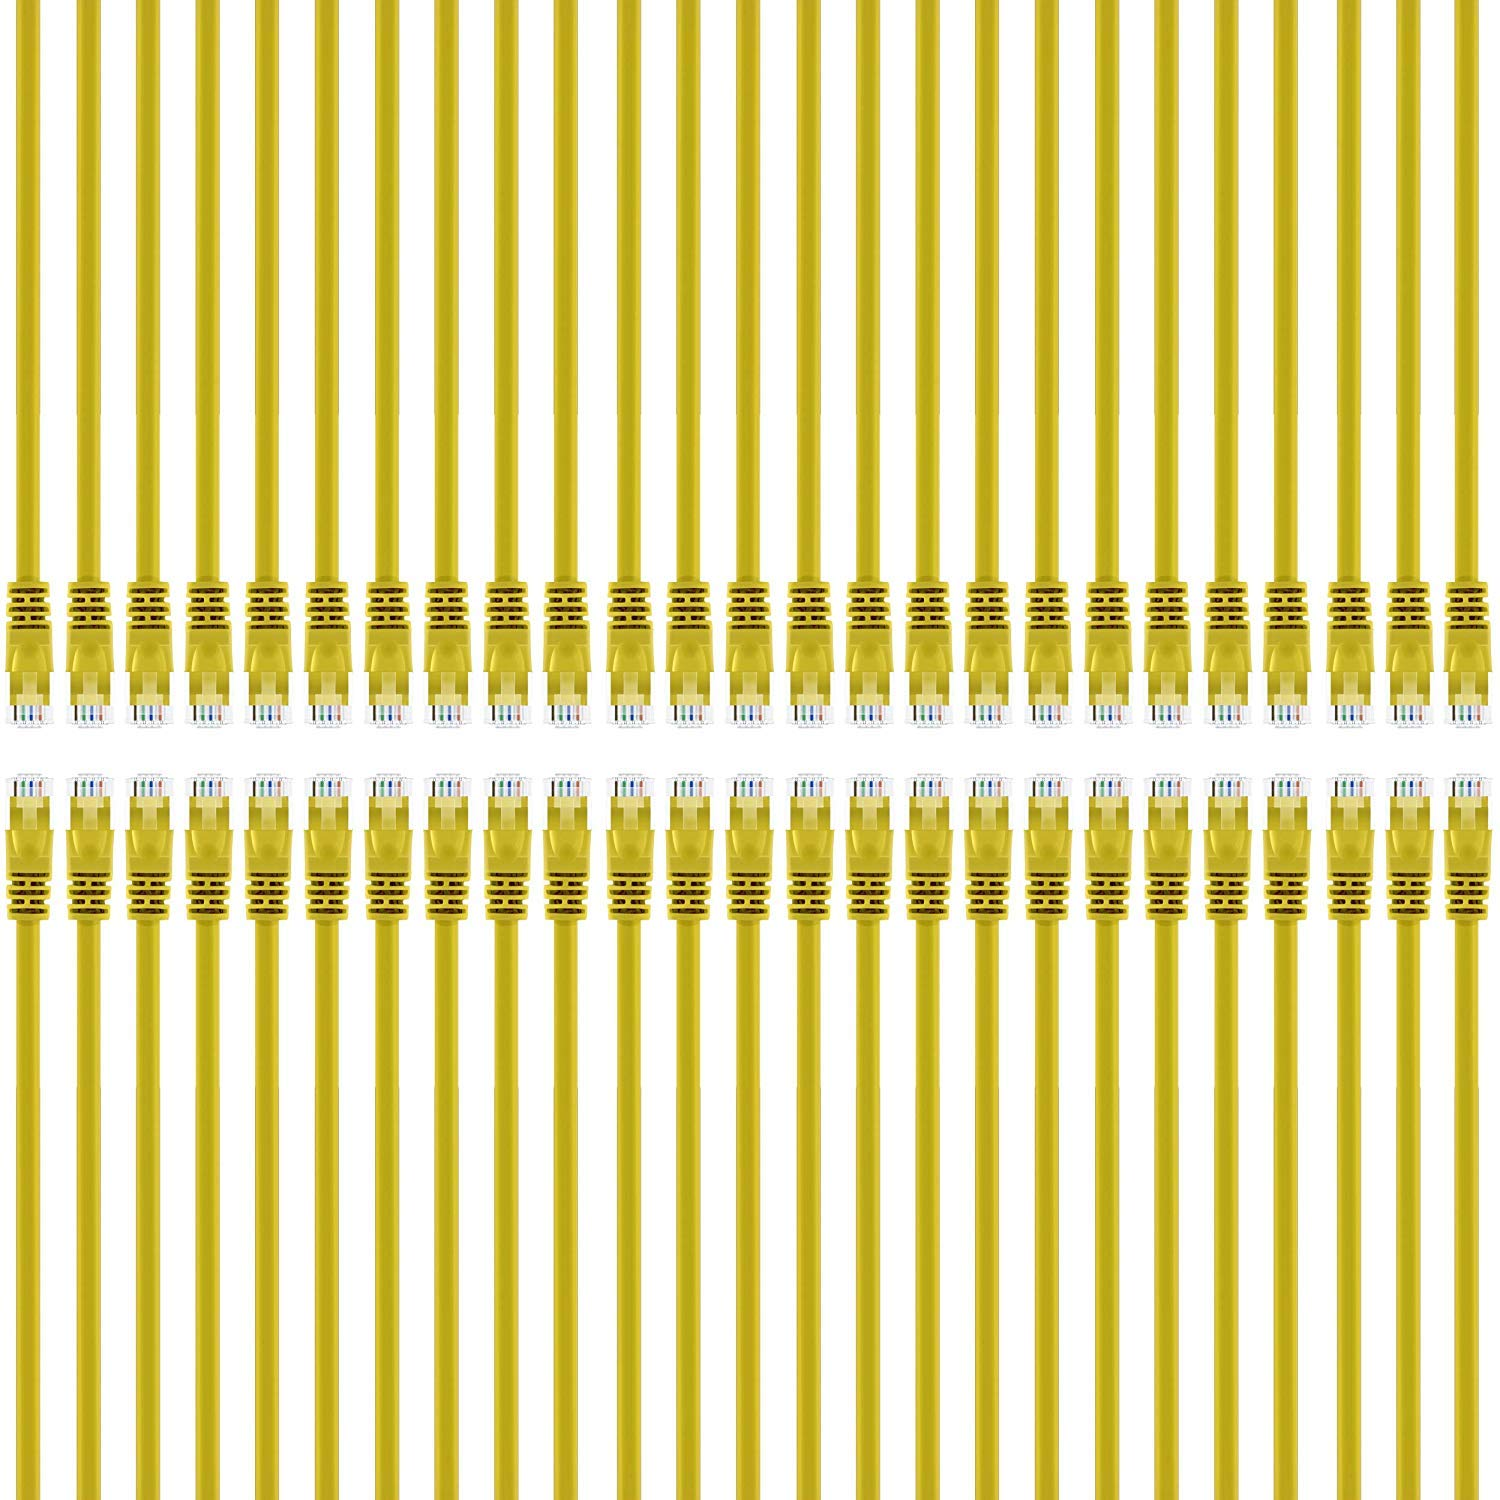 GearIT 50-Pack, Cat5e Ethernet Patch Cable 1 Foot - Snagless RJ45 Computer LAN Network Cord, Yellow - Compatible with 48 Port Switch POE Rackmount 48port Gigabit